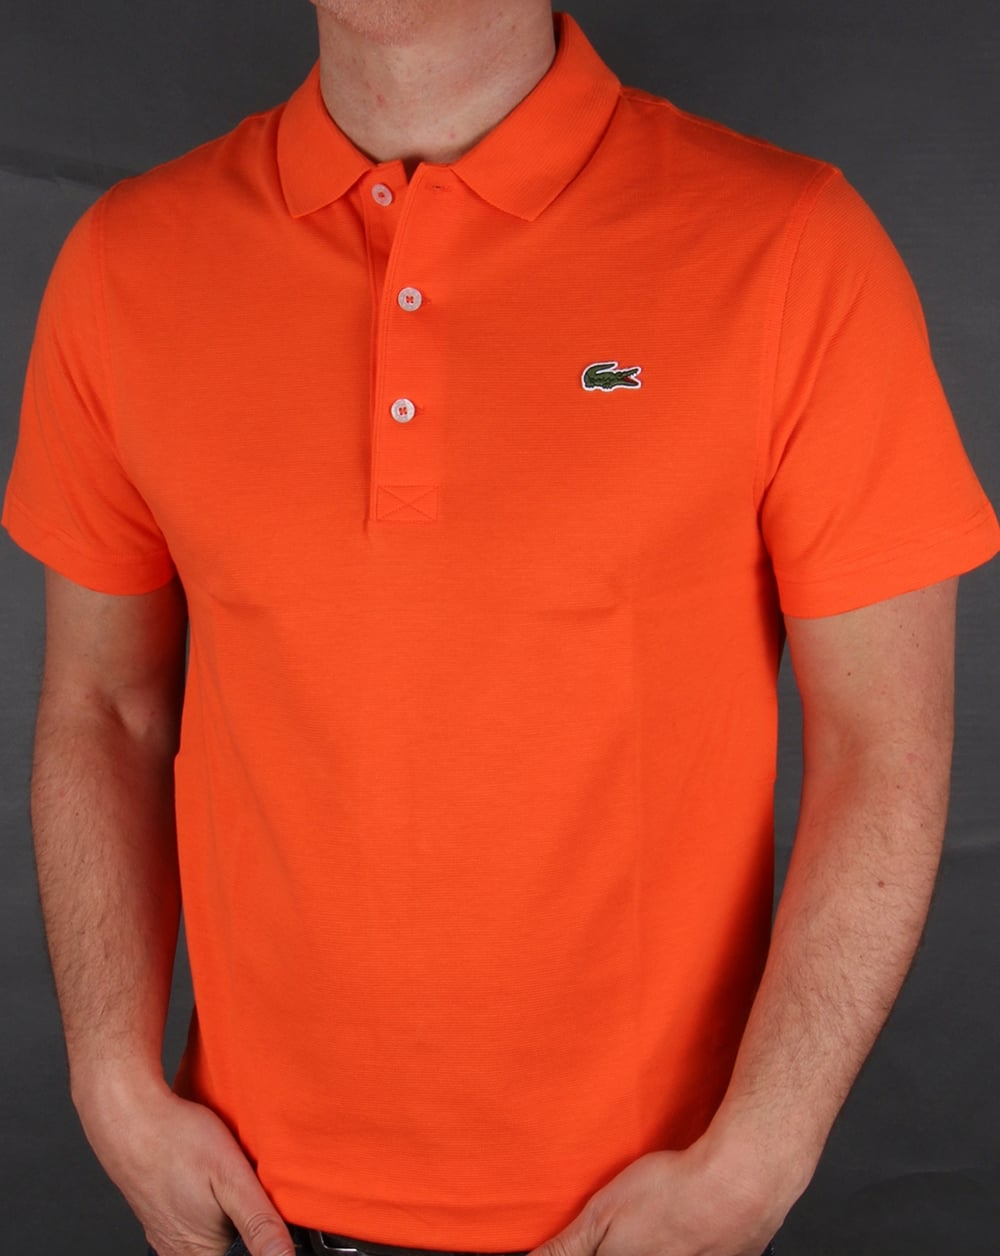 lacoste polo shirt orange fresh short sleeve sport. Black Bedroom Furniture Sets. Home Design Ideas